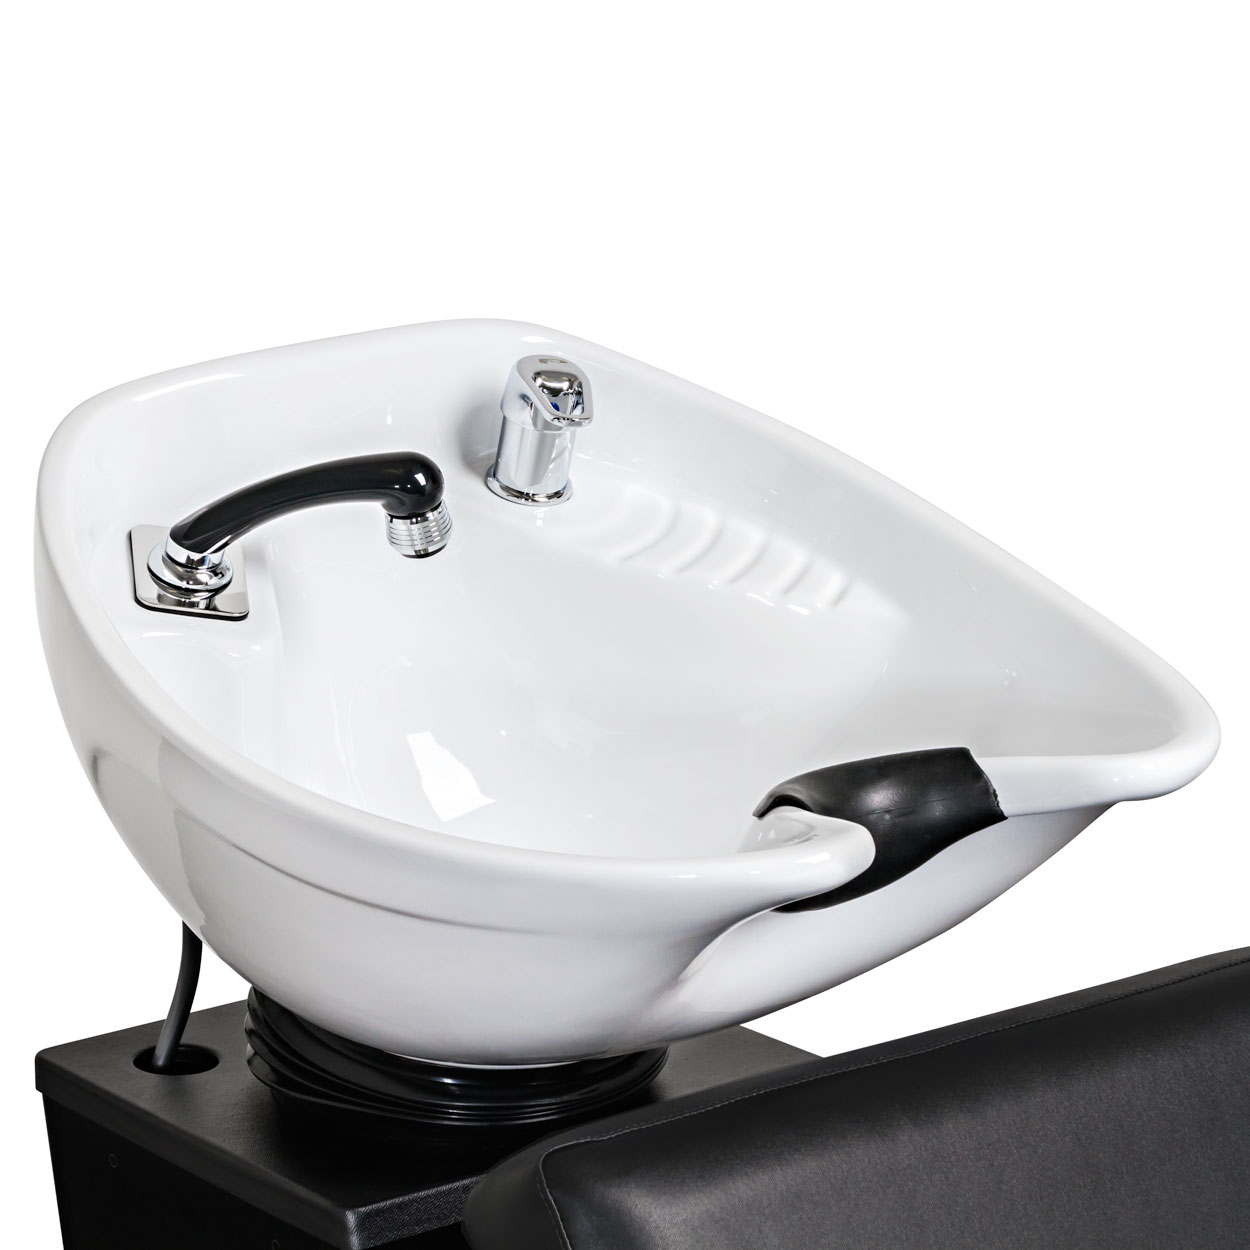 Pibbs 5234 Cosmo Salon Backwash Unit alternative product image 5